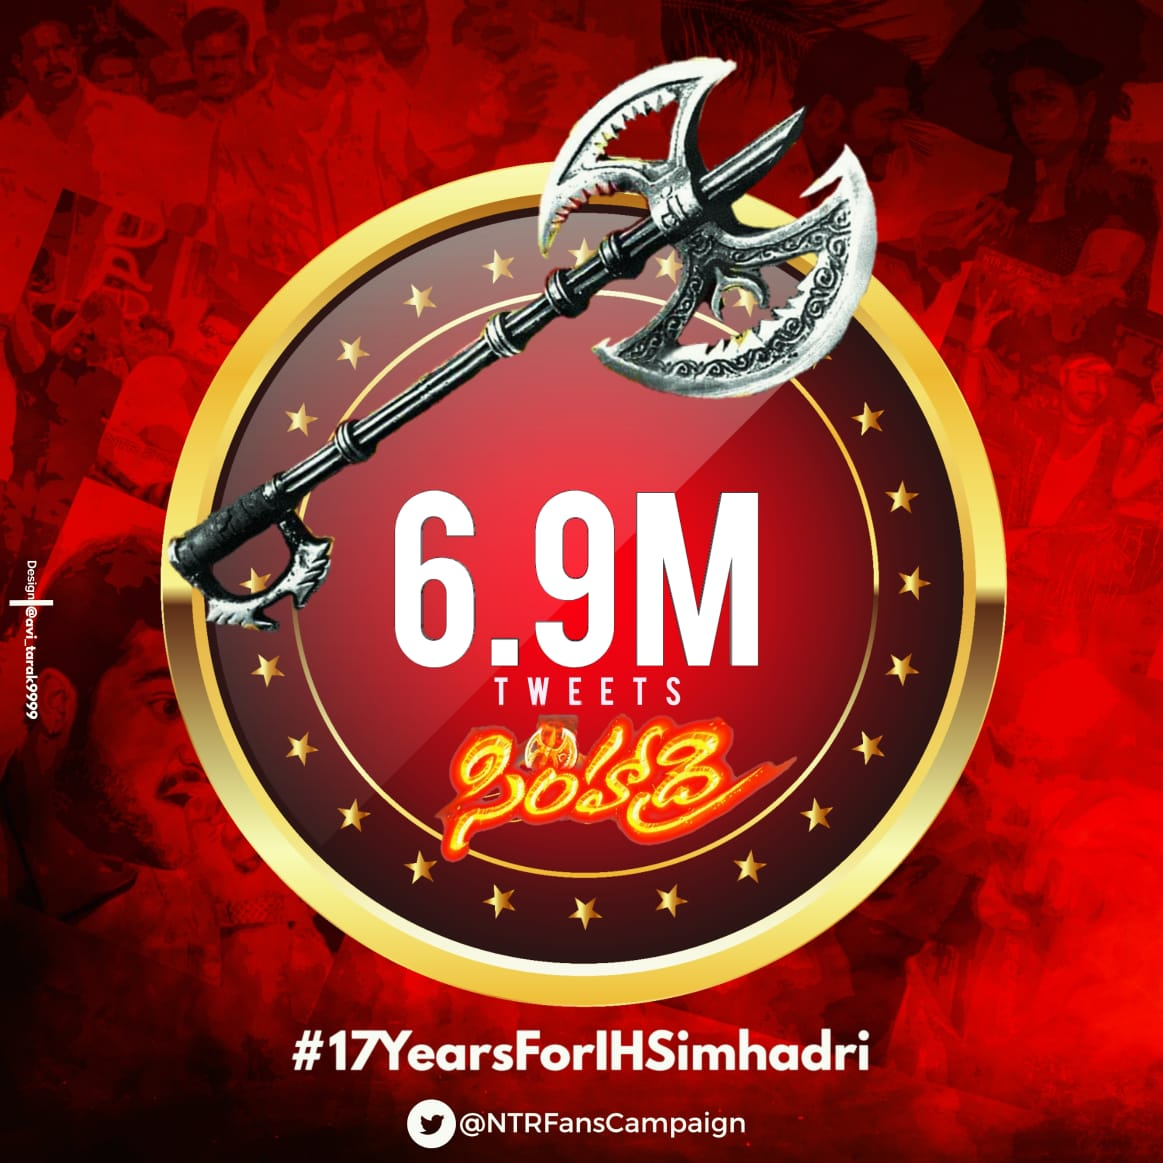 #17YearsForIHSimhadri 6.9M Tweets Done   Next Stop 7 Million Tweets   All @tarak9999 Fans, Let's Do It Fast  #17YearsForIHSimhadri ,<br>http://pic.twitter.com/pfuO4Z3iiC